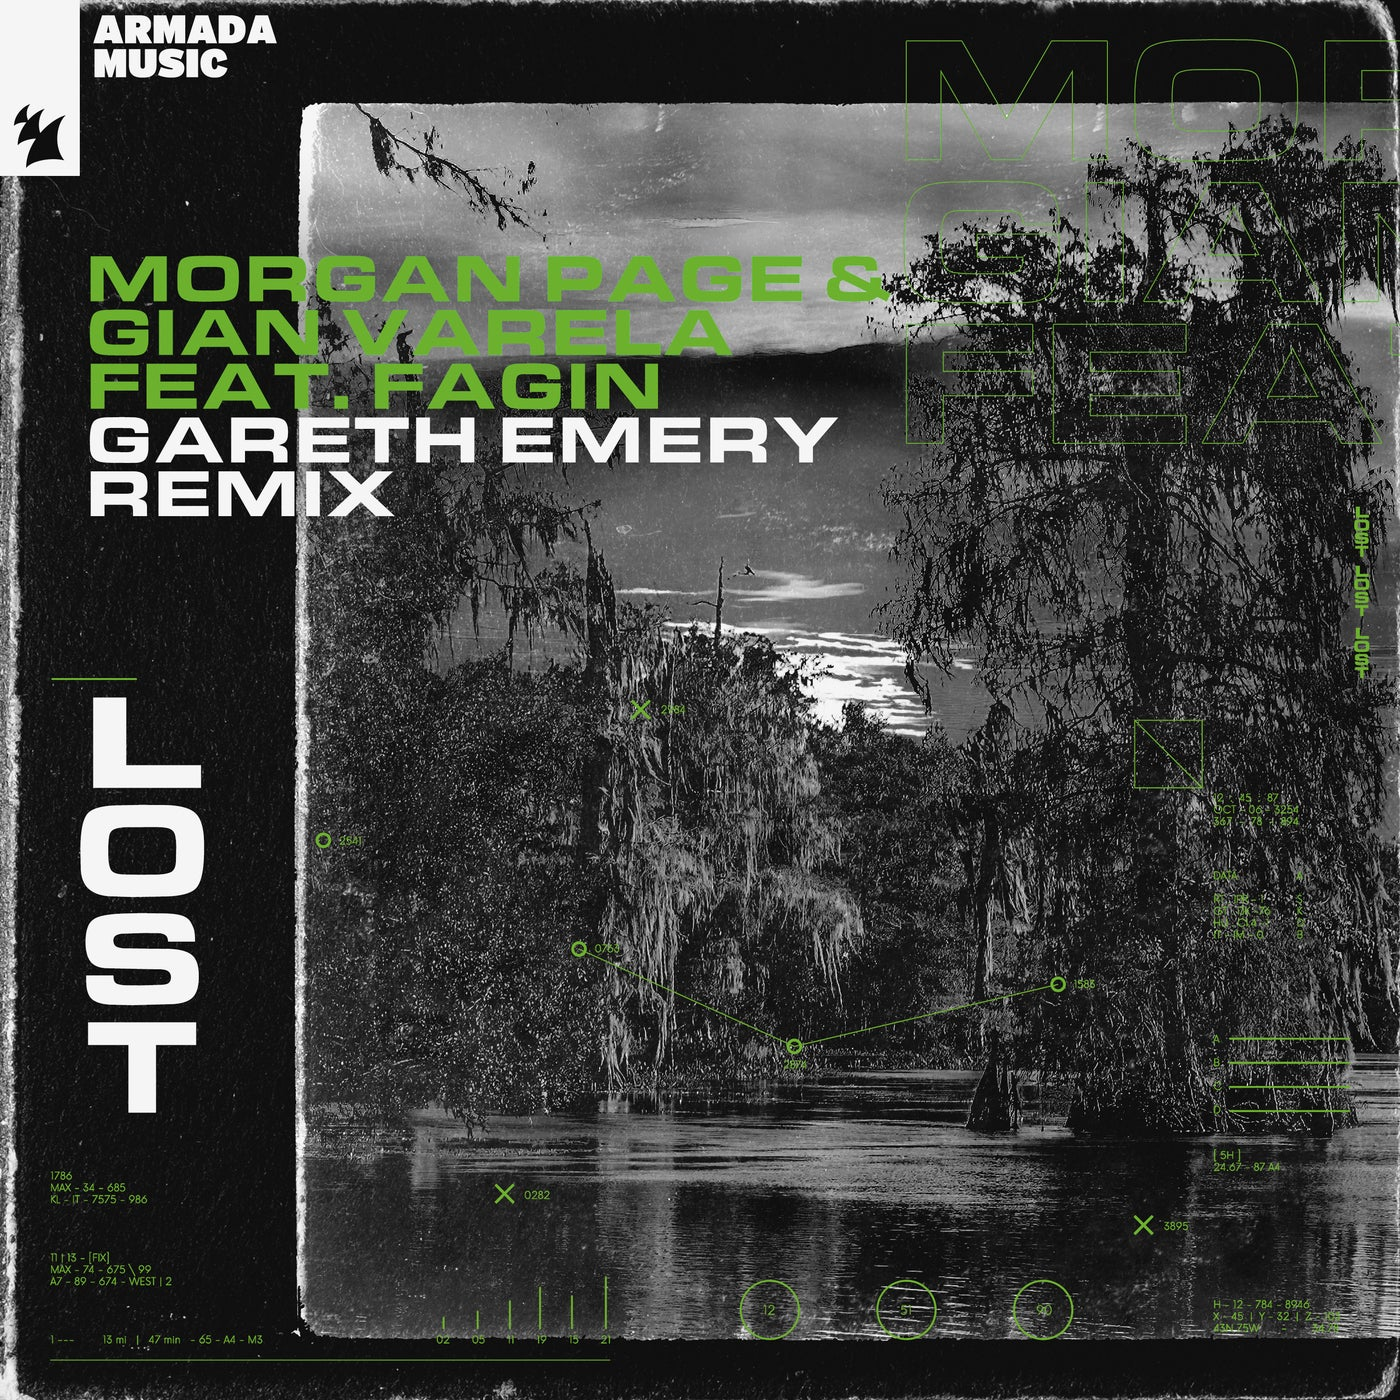 Lost feat. Fagin (Gareth Emery Extended Remix)